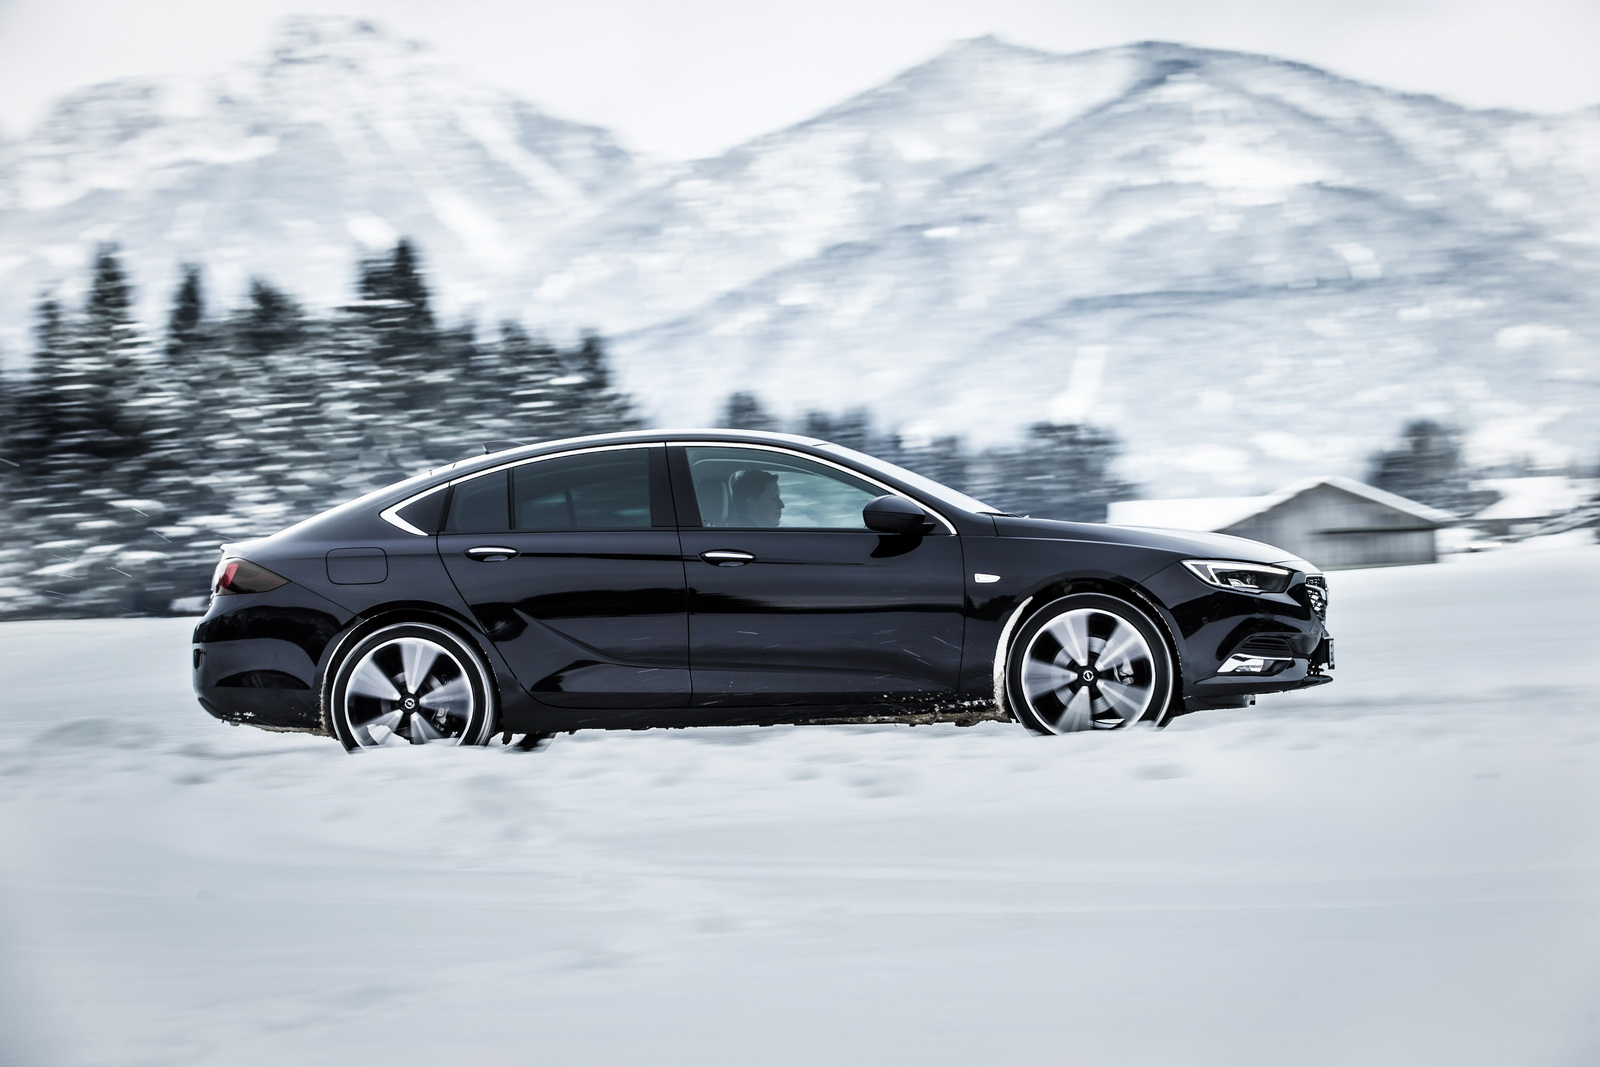 The new Opel Insignia 4x4 offers optimum dynamics, feel and handling in all situations.